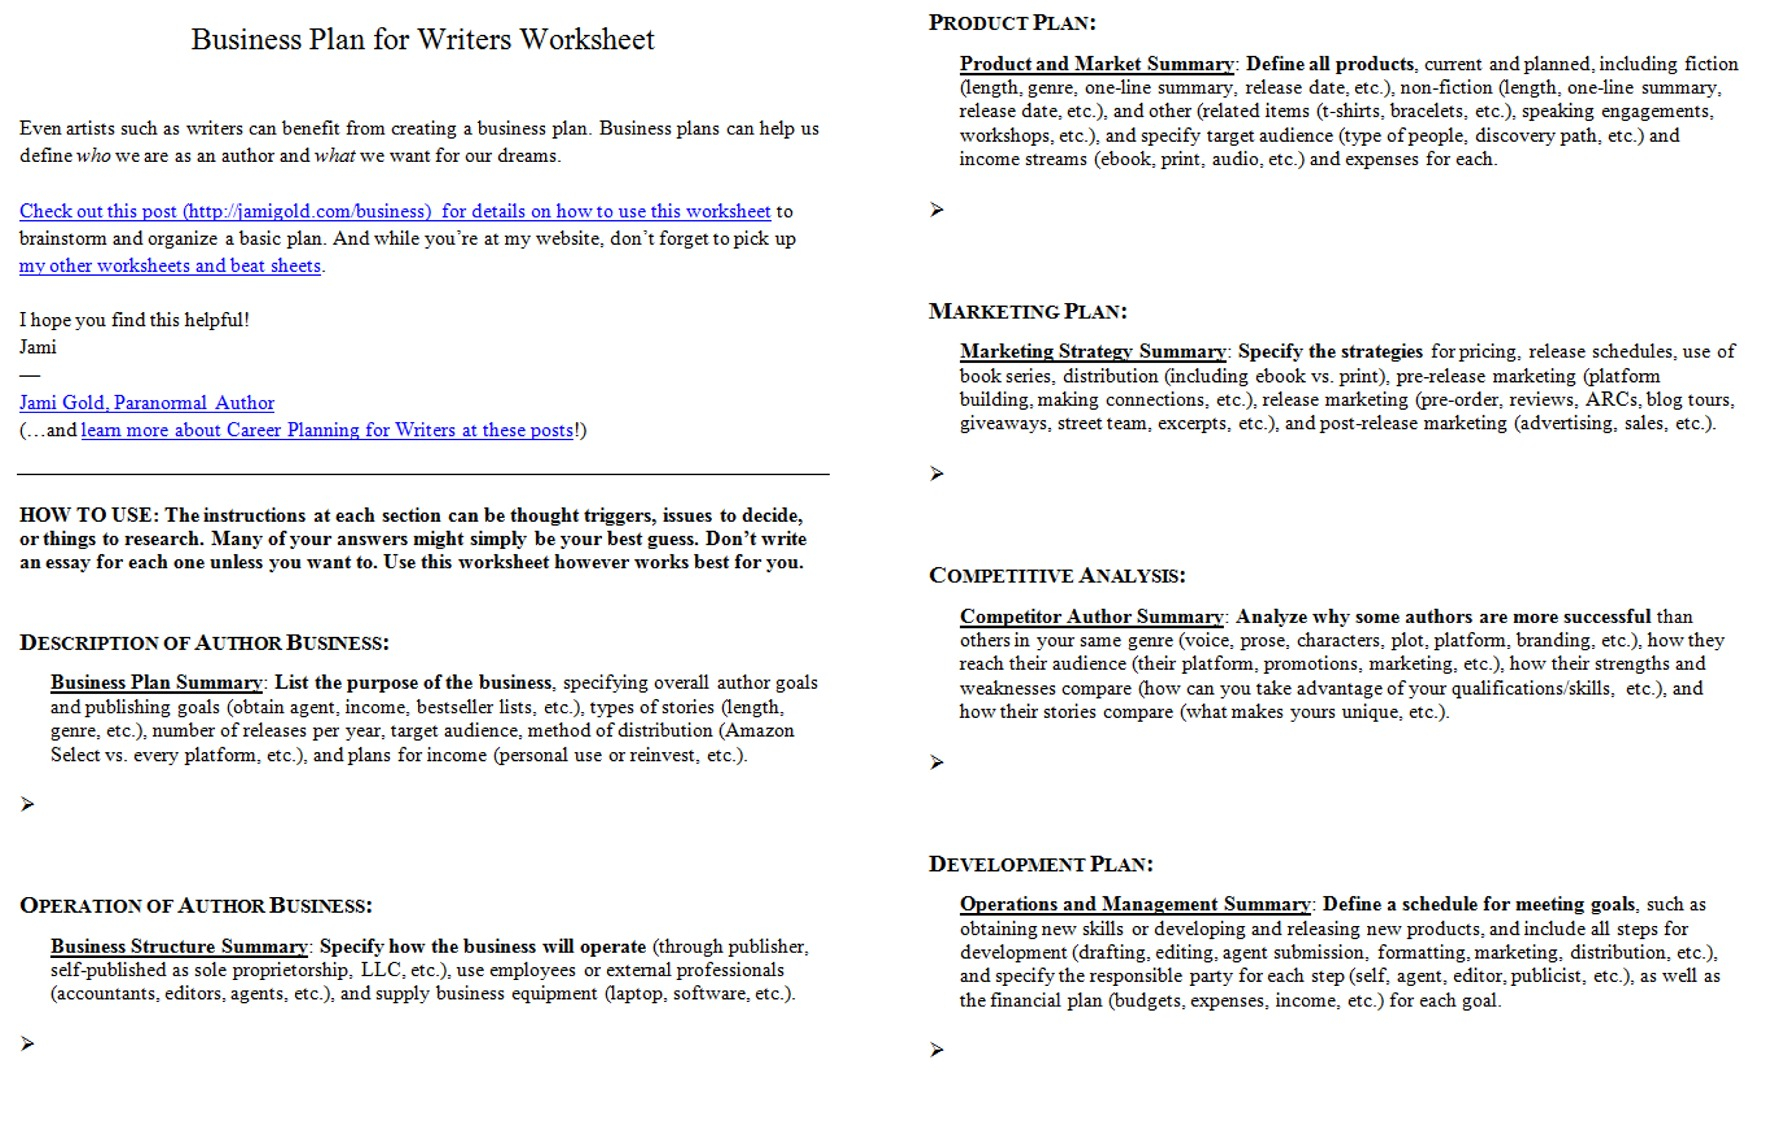 Aldiablosus  Pleasing Worksheets For Writers  Jami Gold Paranormal Author With Glamorous Screen Shot Of Both Pages Of The Business Plan For Writers Worksheet With Astounding English Grammar Homophones Worksheets Also Pronoun Reference Worksheets In Addition Earthquakes For Kids Worksheets And Time To The Nearest  Minutes Worksheet As Well As Halloween Pattern Worksheet Additionally Four Digit Multiplication Worksheets From Jamigoldcom With Aldiablosus  Glamorous Worksheets For Writers  Jami Gold Paranormal Author With Astounding Screen Shot Of Both Pages Of The Business Plan For Writers Worksheet And Pleasing English Grammar Homophones Worksheets Also Pronoun Reference Worksheets In Addition Earthquakes For Kids Worksheets From Jamigoldcom